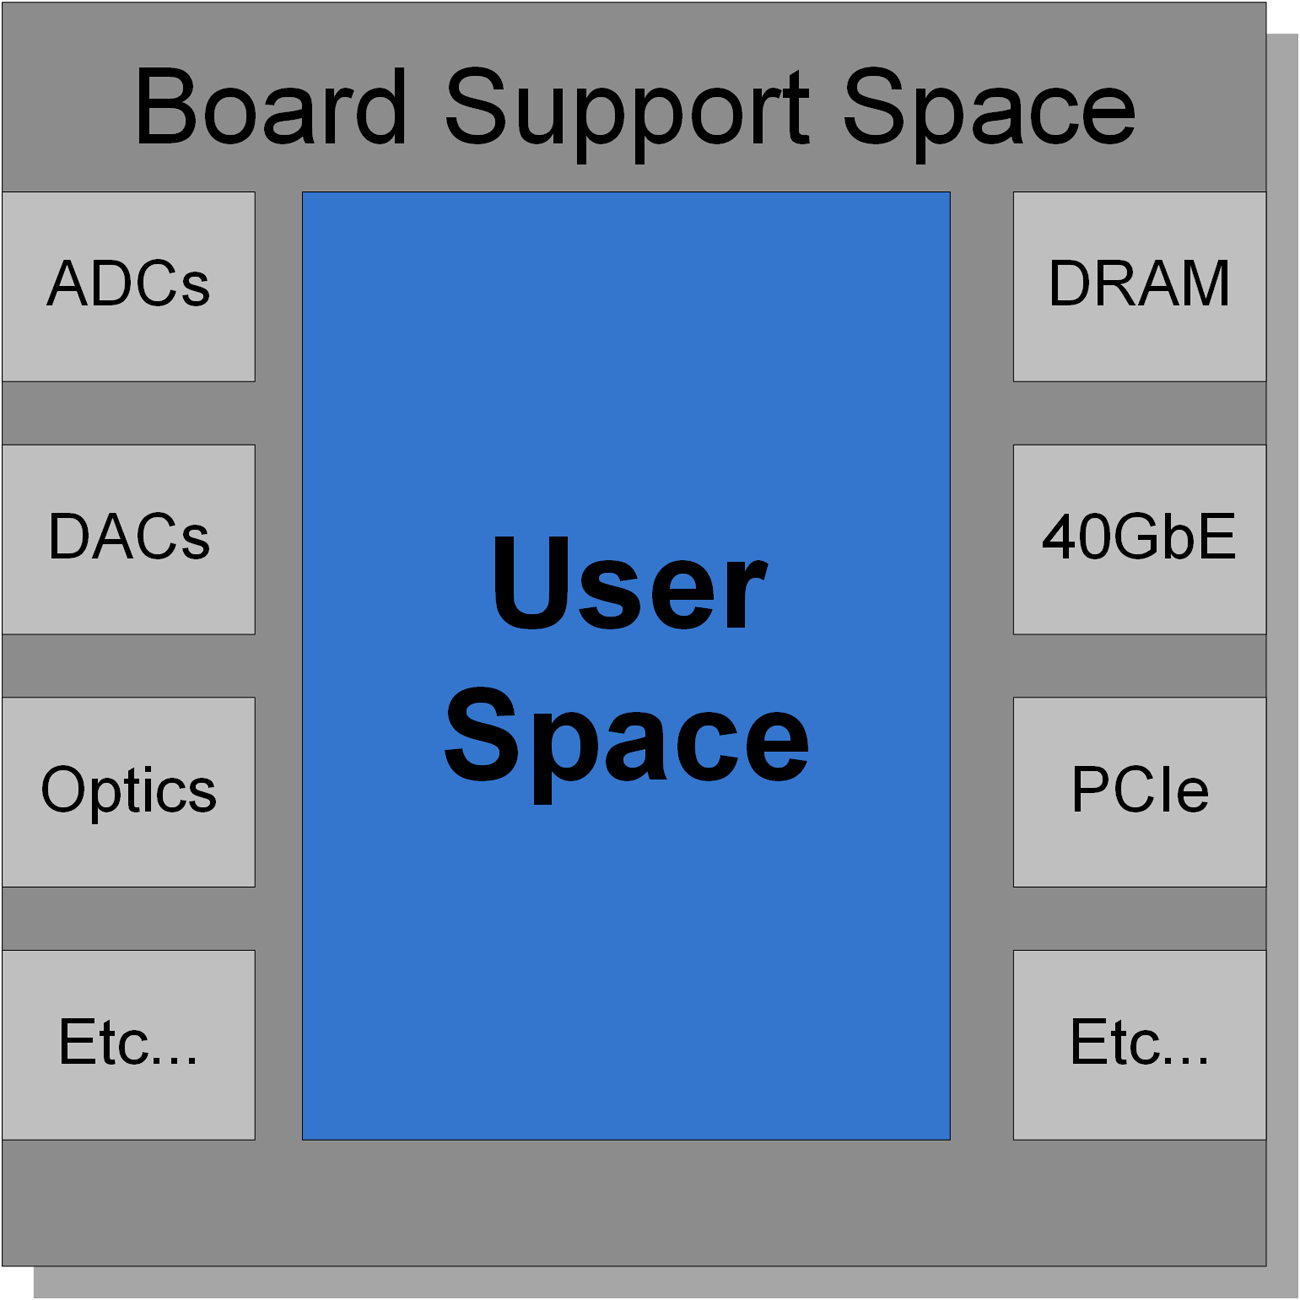 Board Support Space